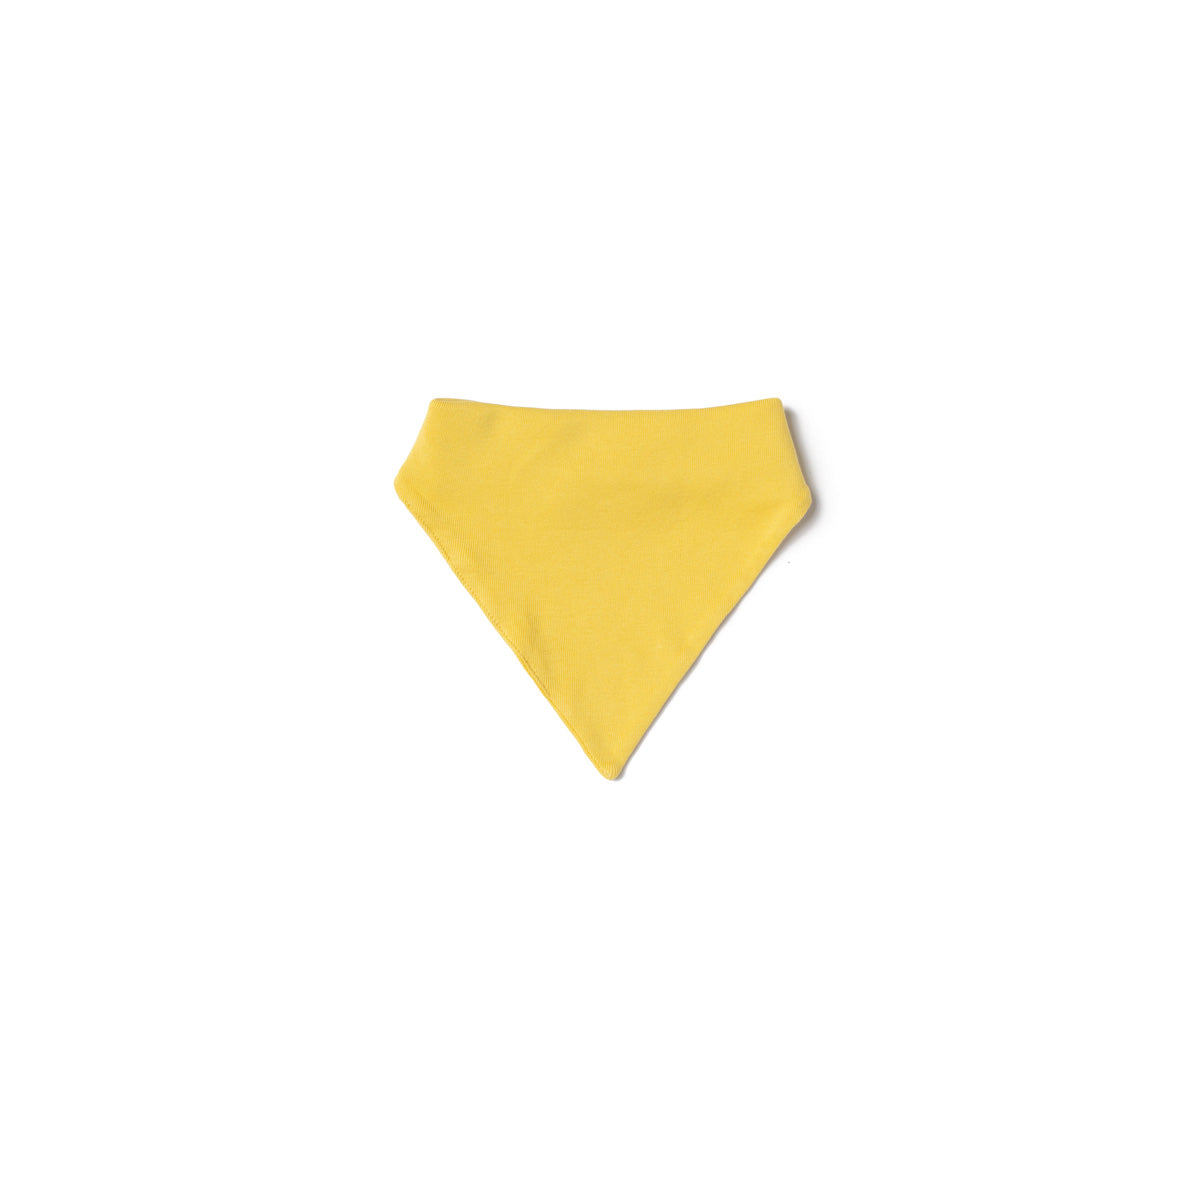 Baby Rib Bandana Bib, Maize Yellow